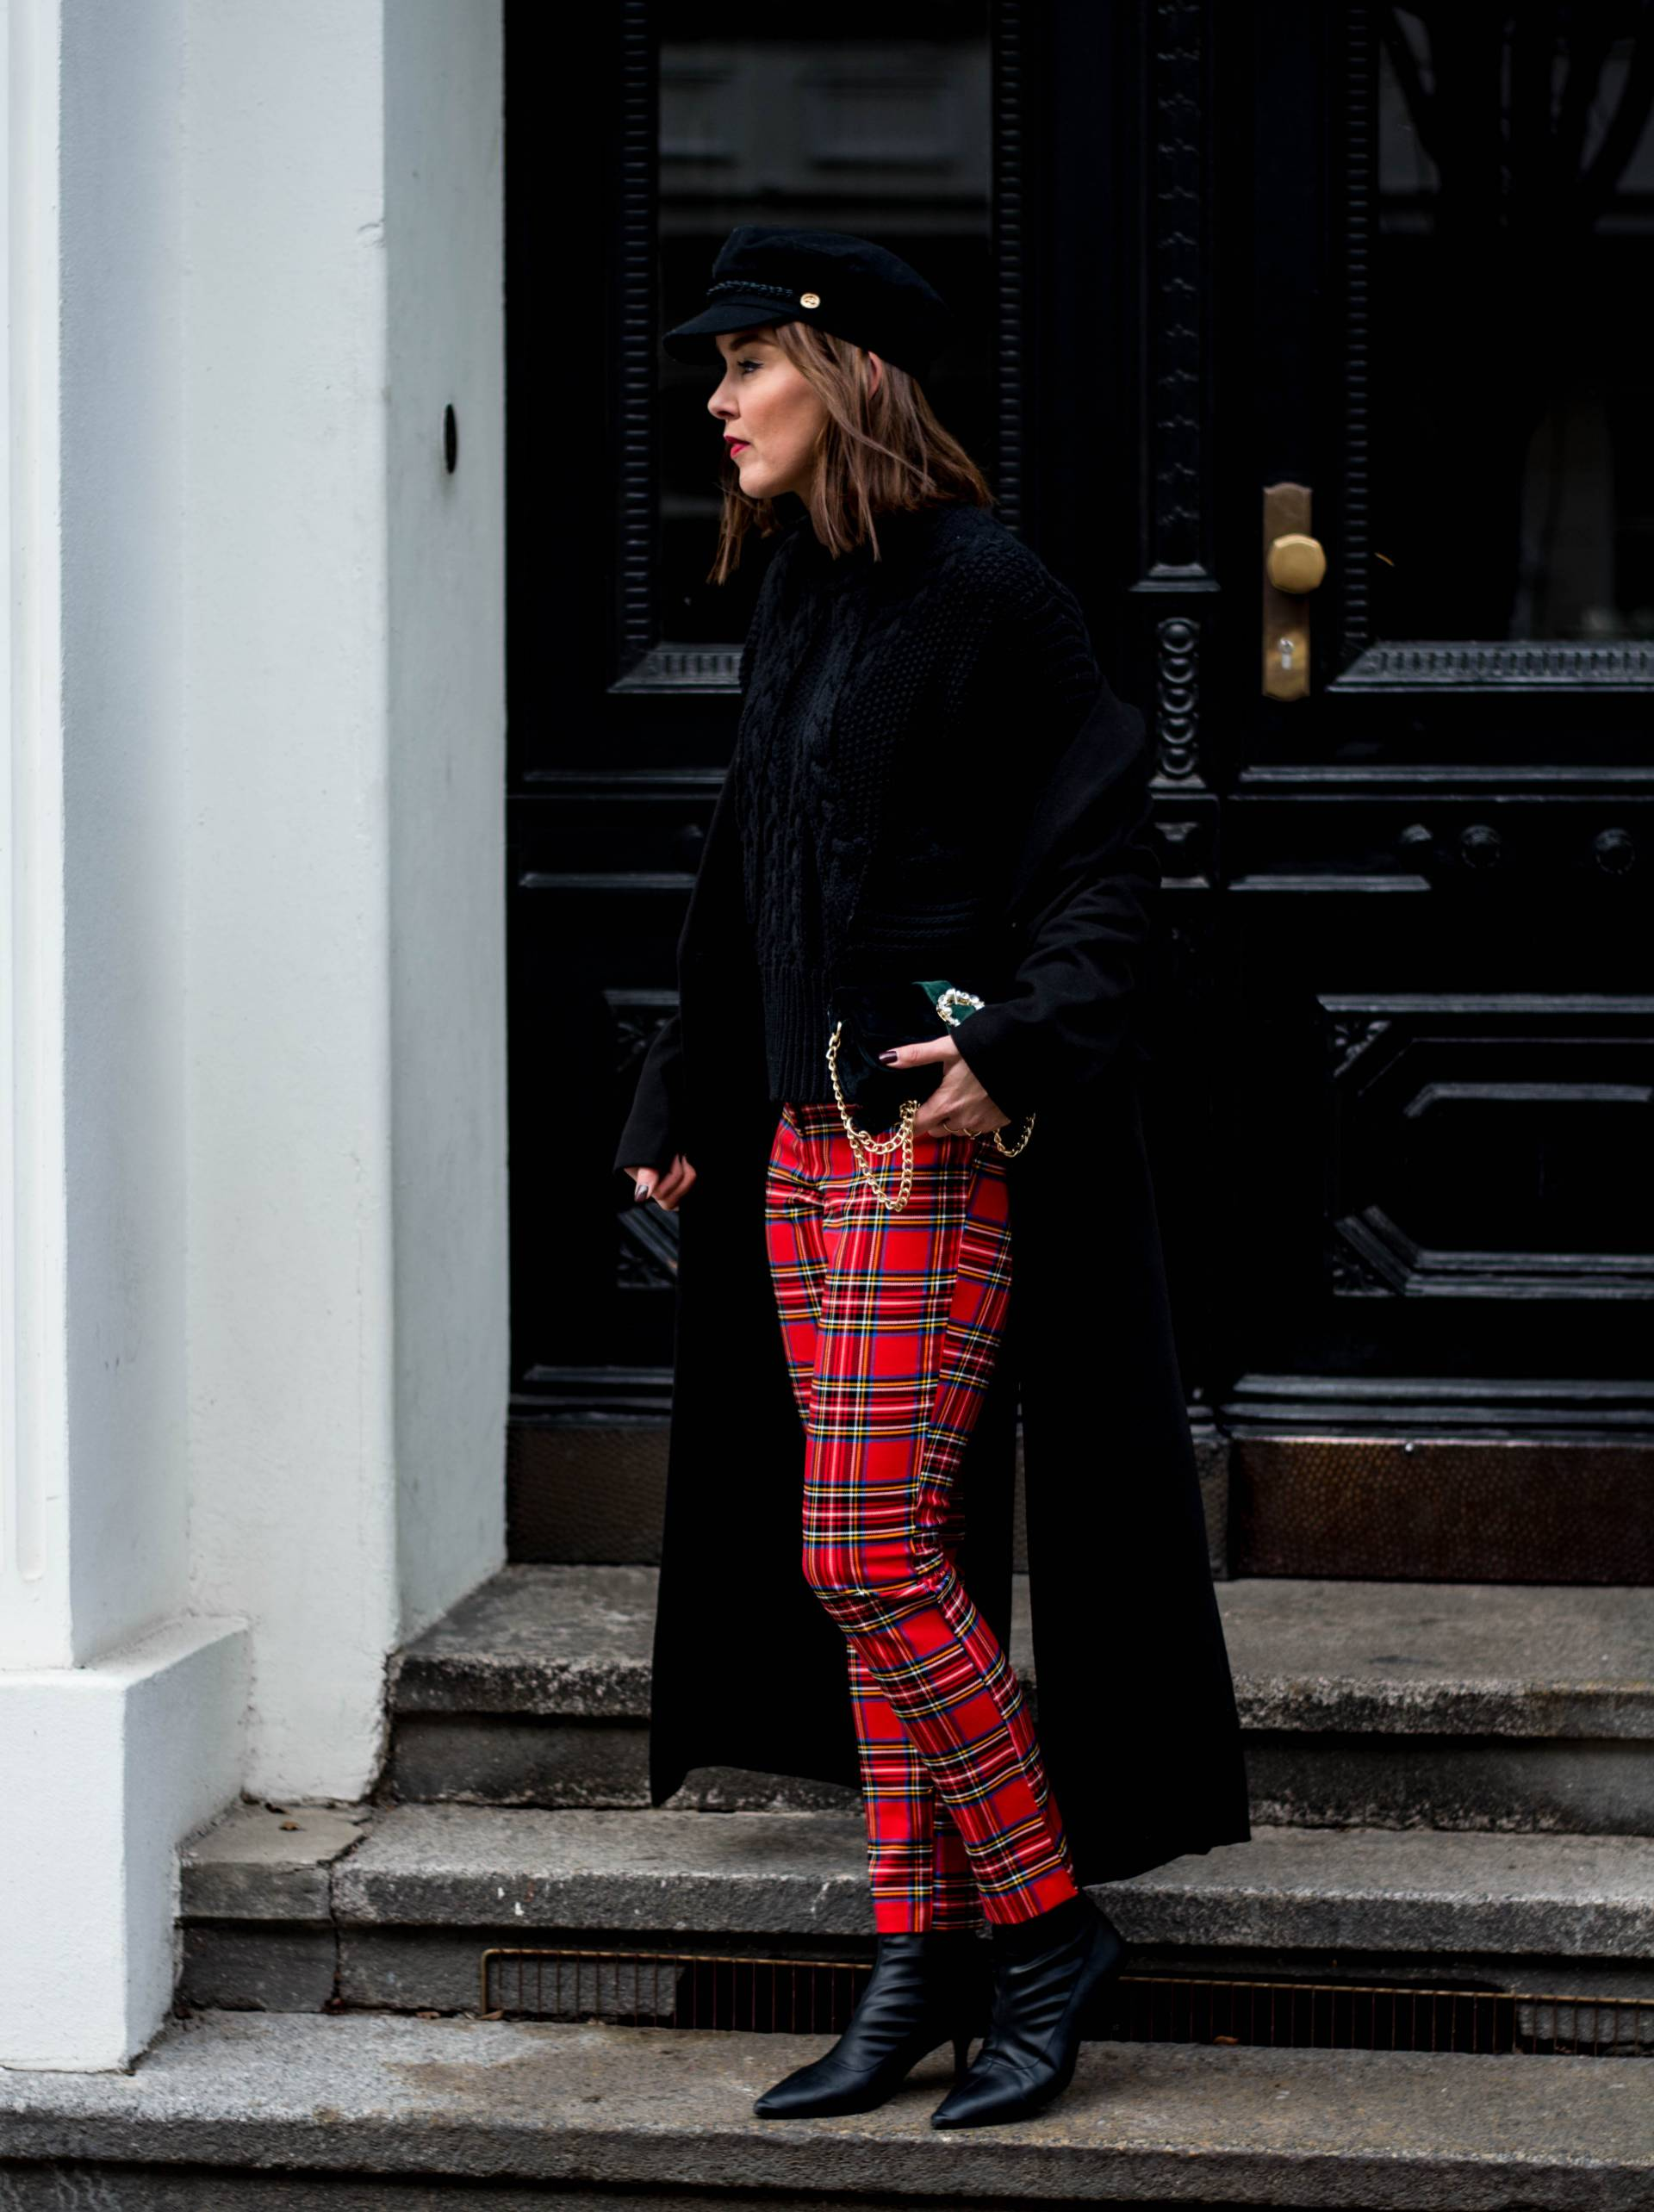 style-appetite-xmas-look-mit-checkered-pants-mein-wunschzettel